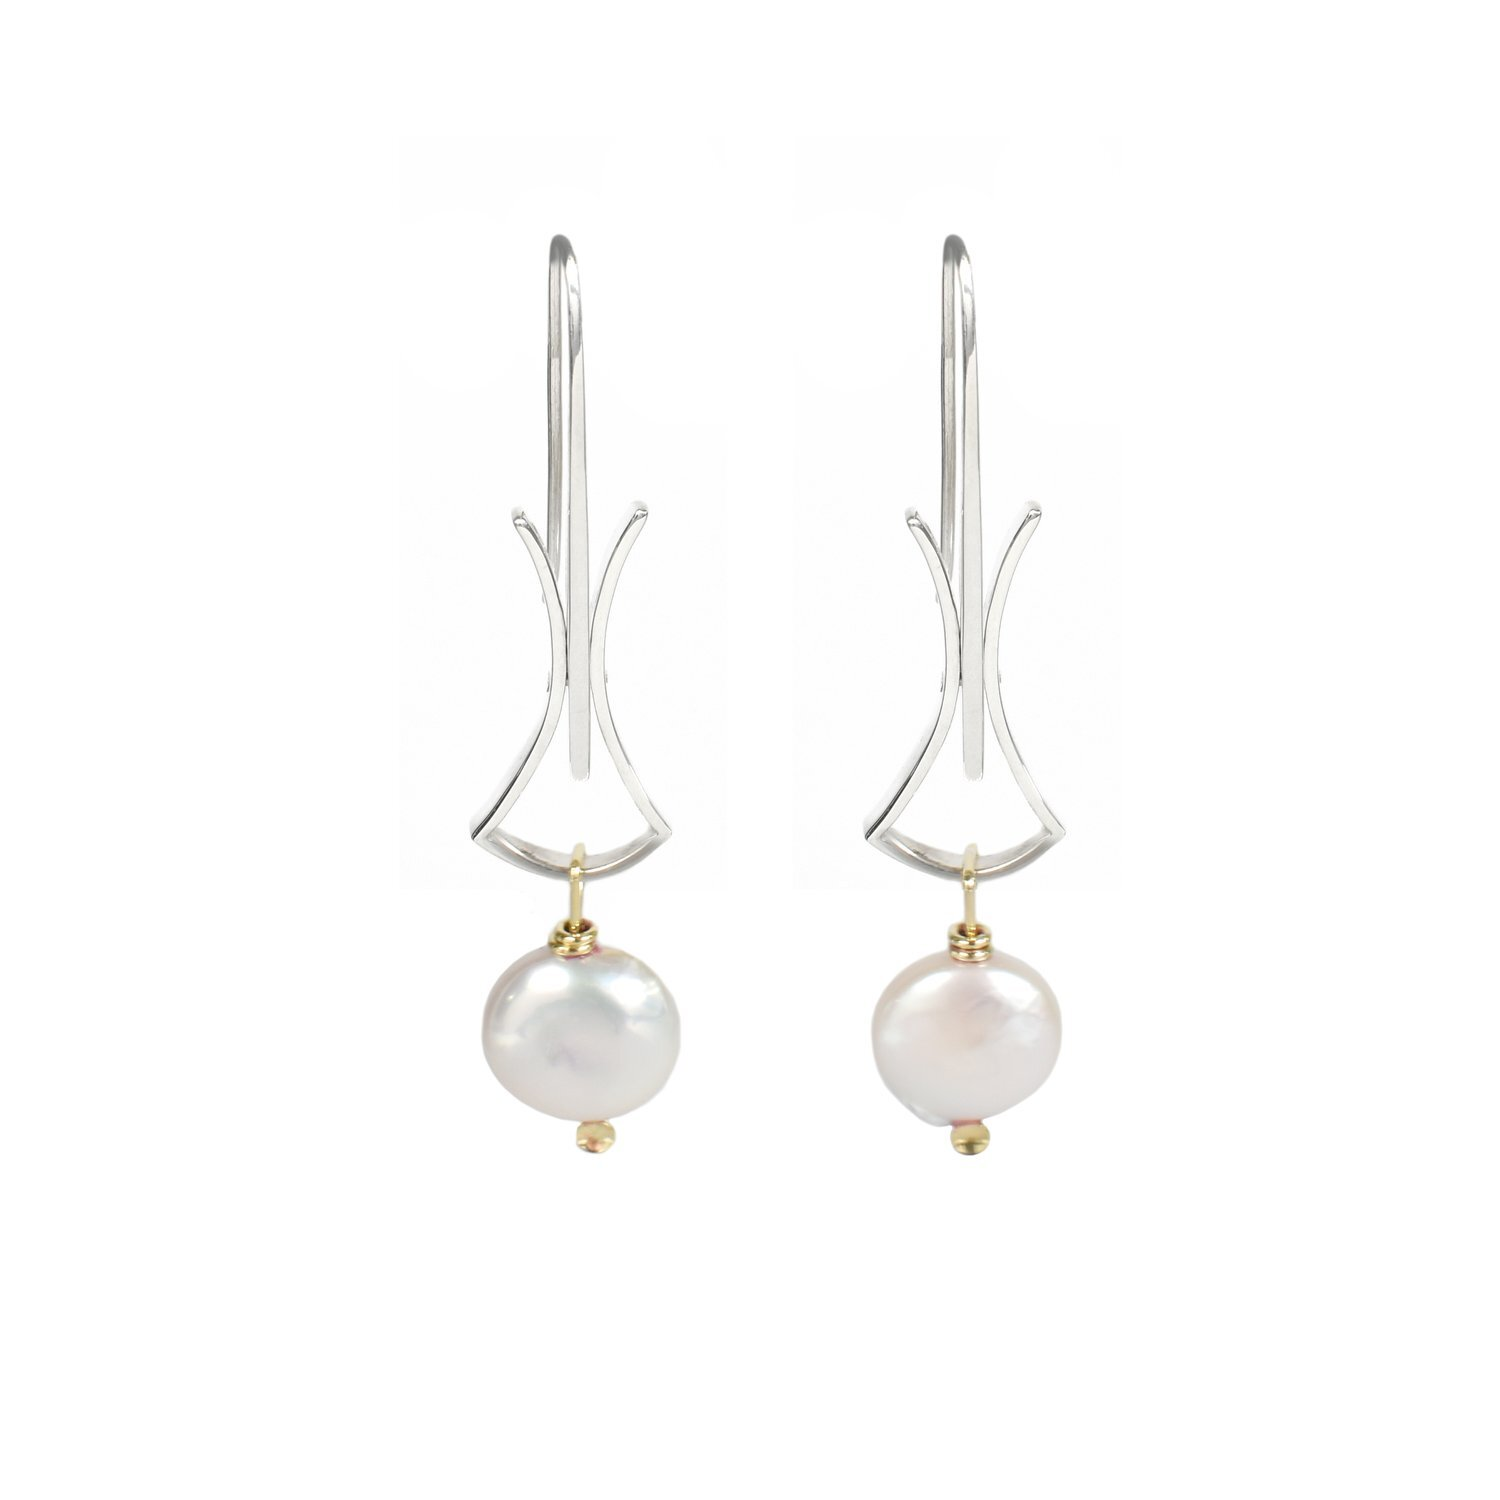 NL-E15 Silver Hourglass With Coin Pearls And 18 Kty Gold Earring.jpg